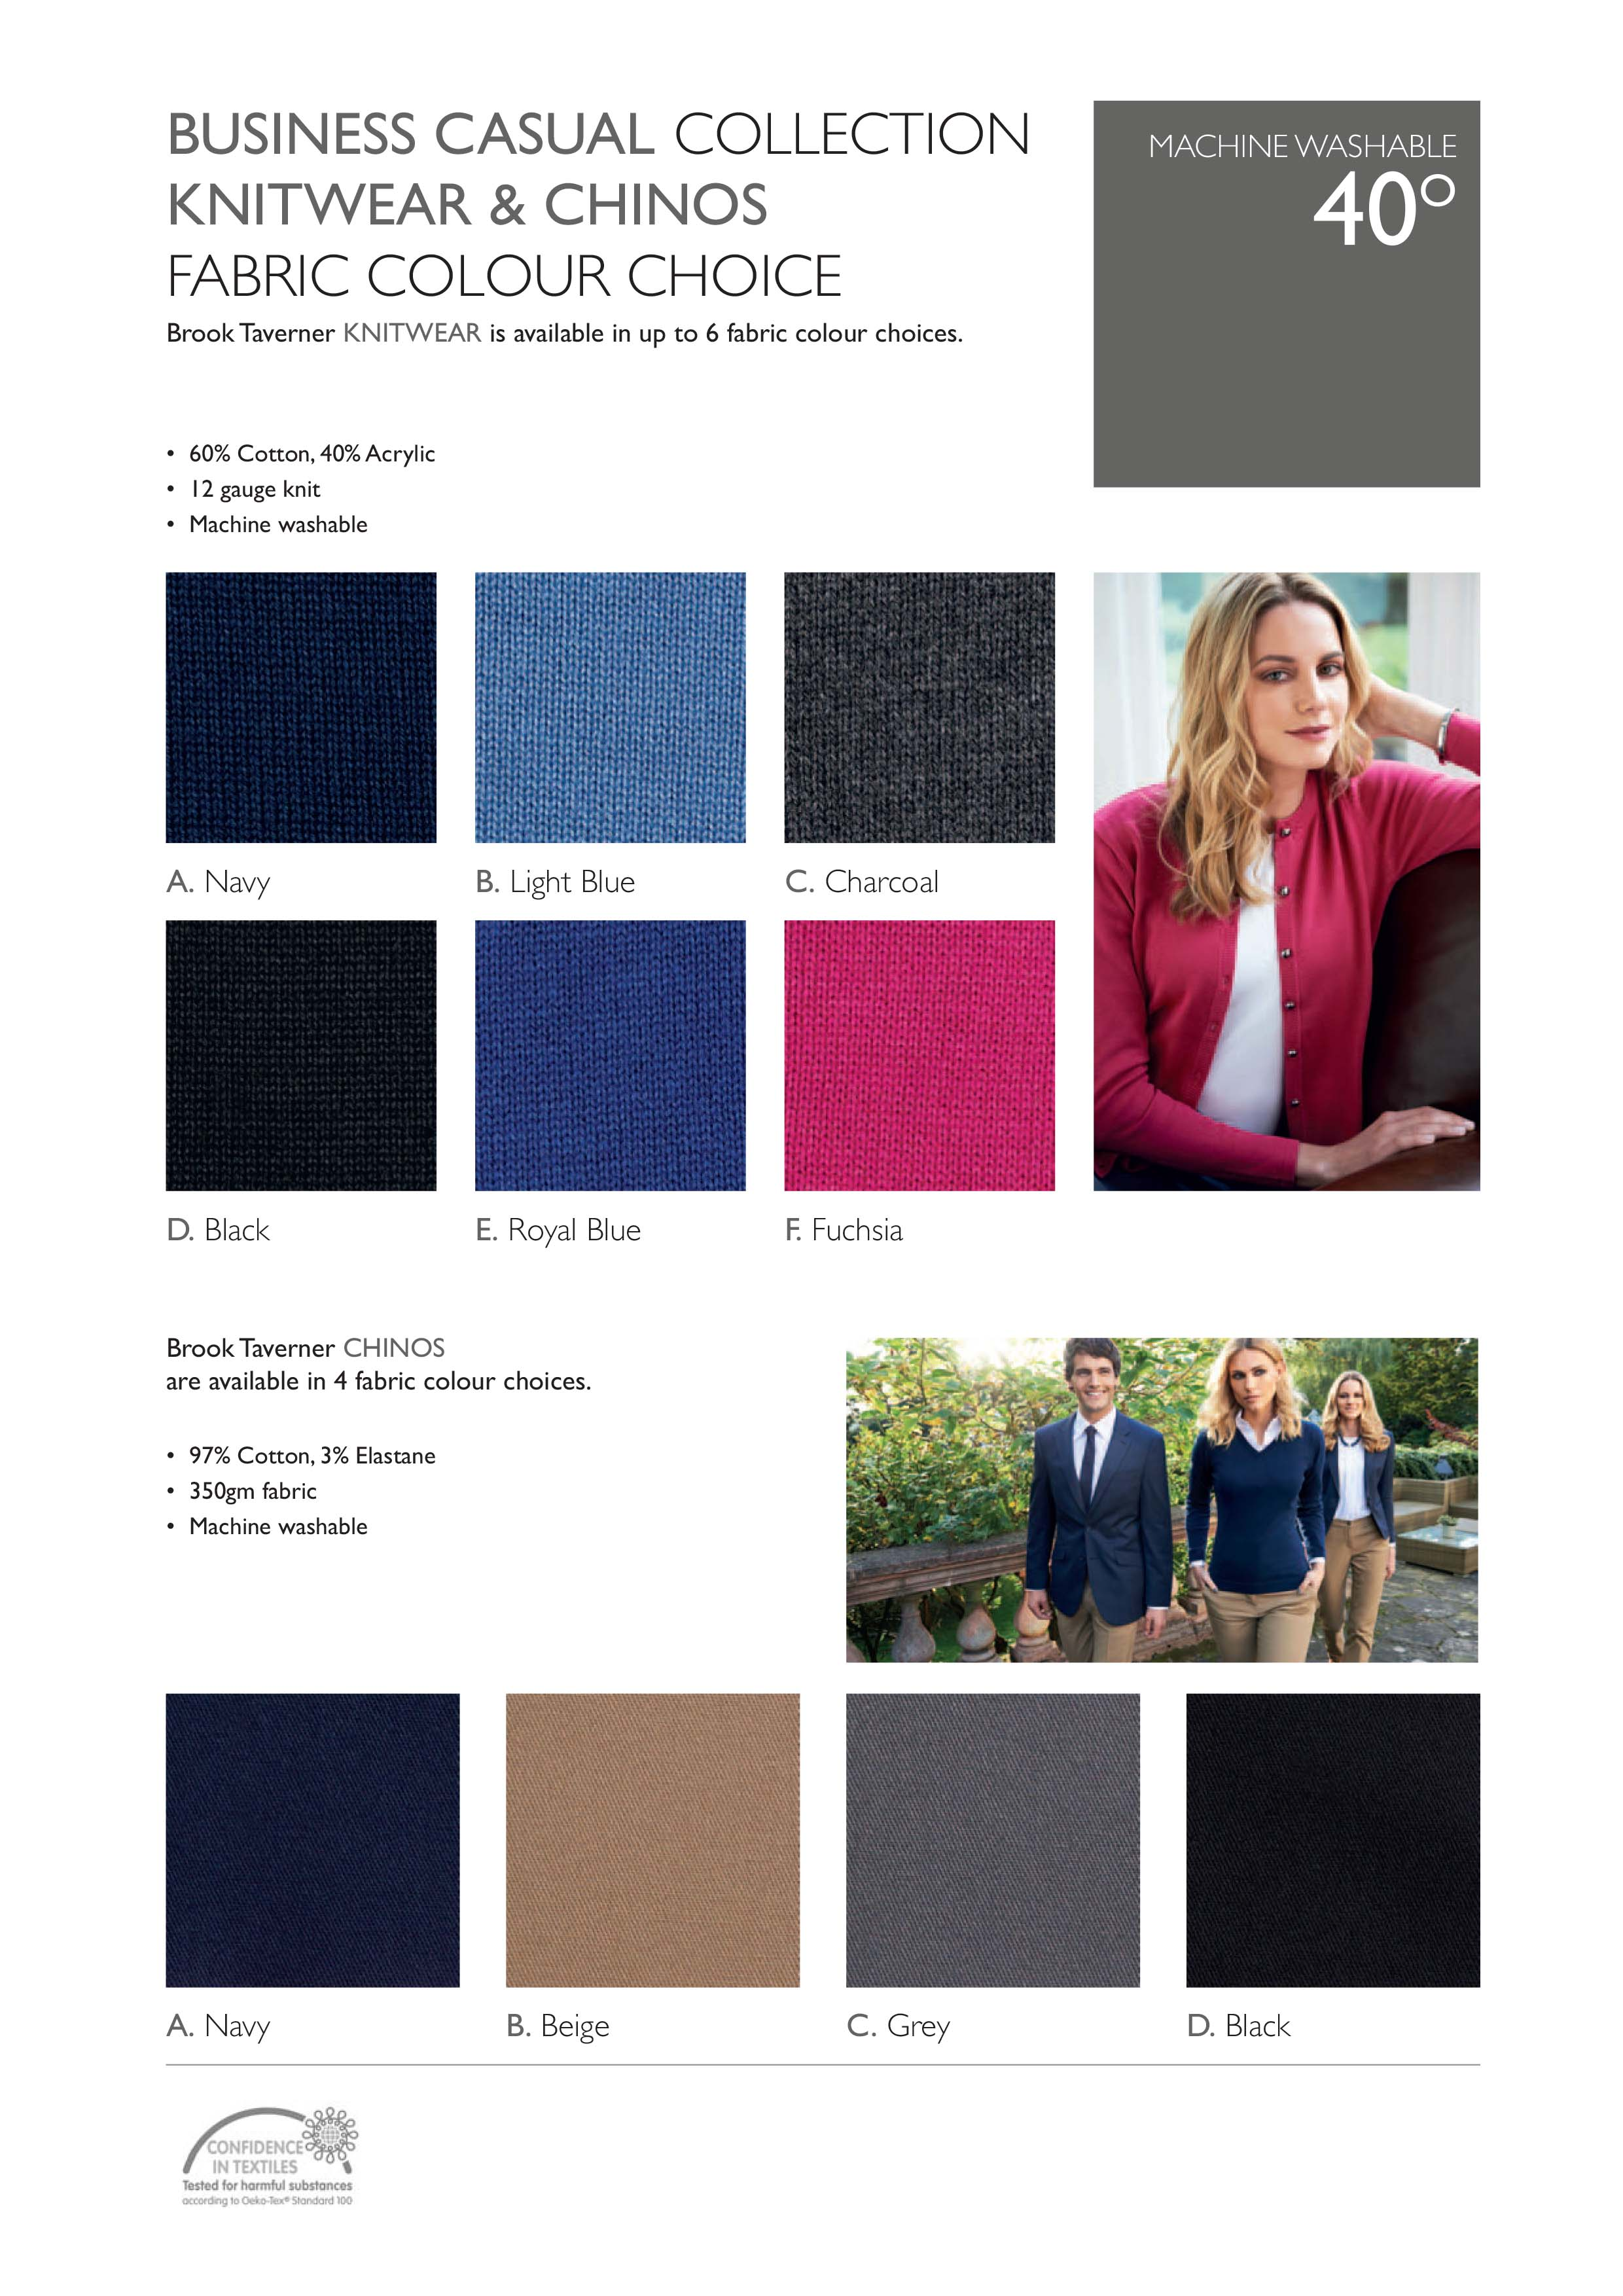 Brook Taverner Business casual fabric and colours